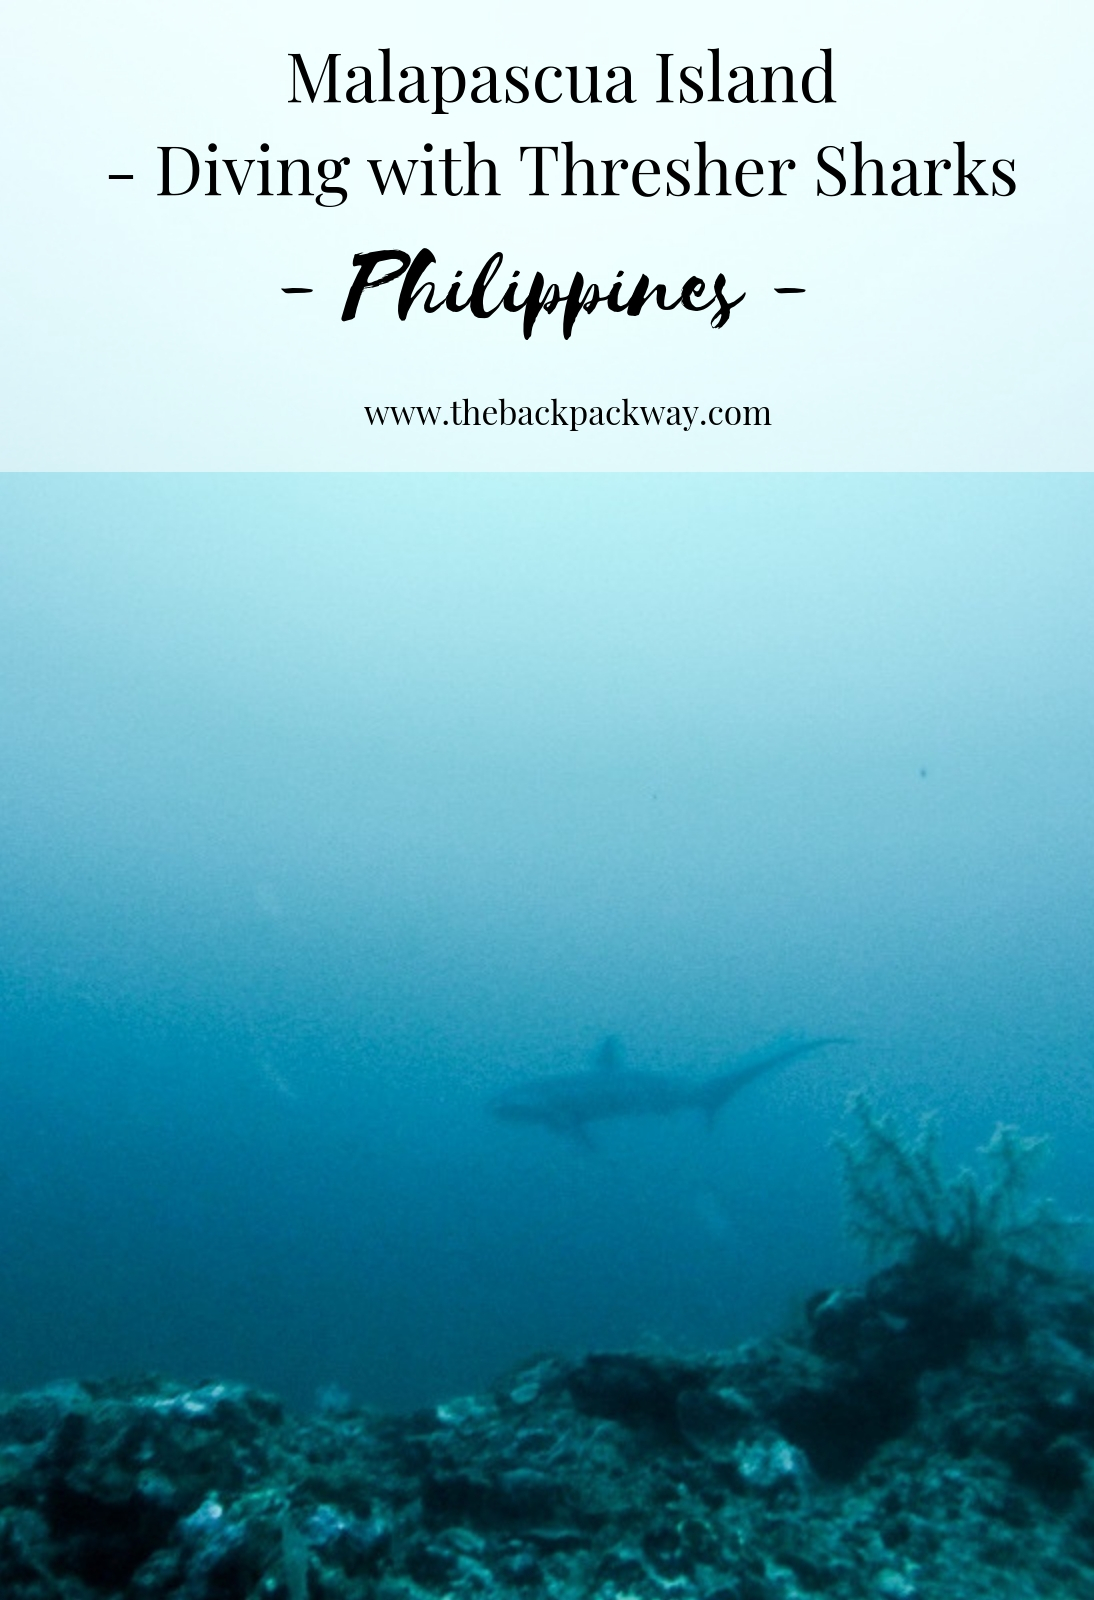 Malapascua Island Thresher Sharks